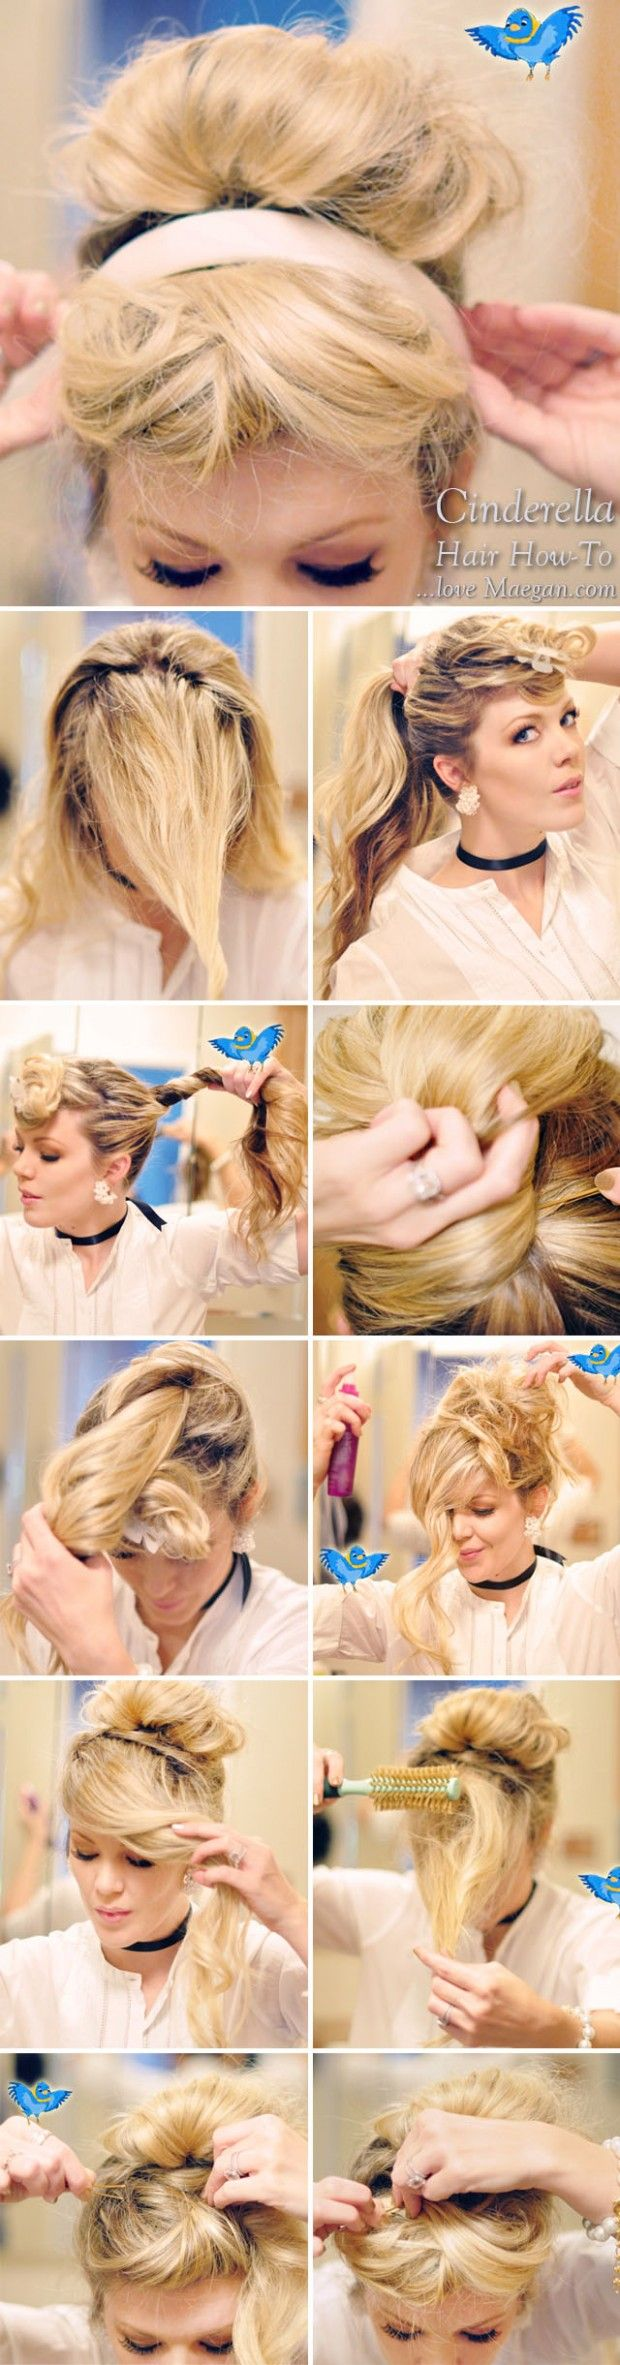 How To Cinderella Hair Makeup Photo Tutorial Love